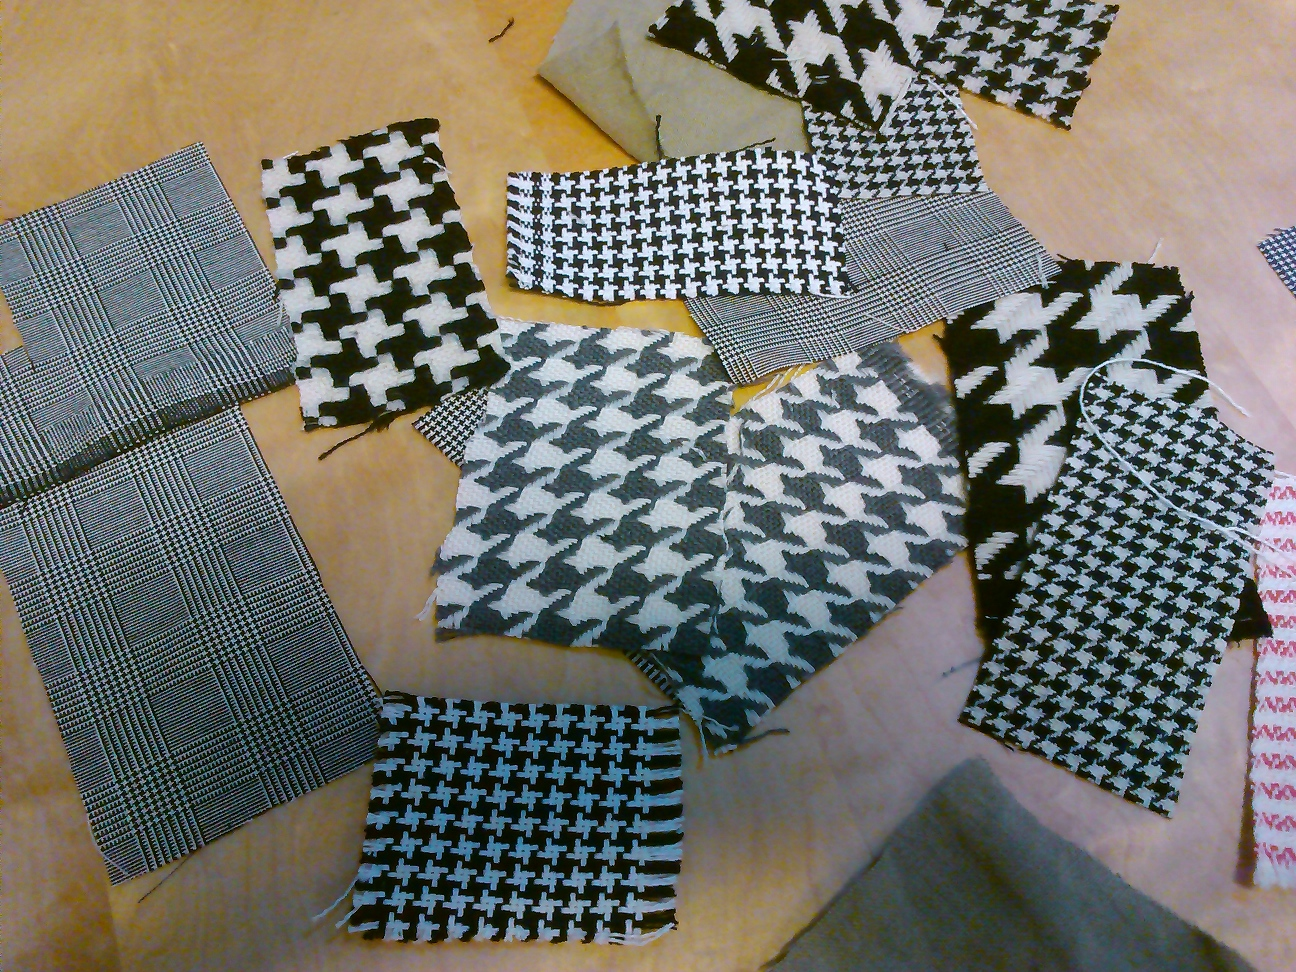 Lots of pieces of woven fabric